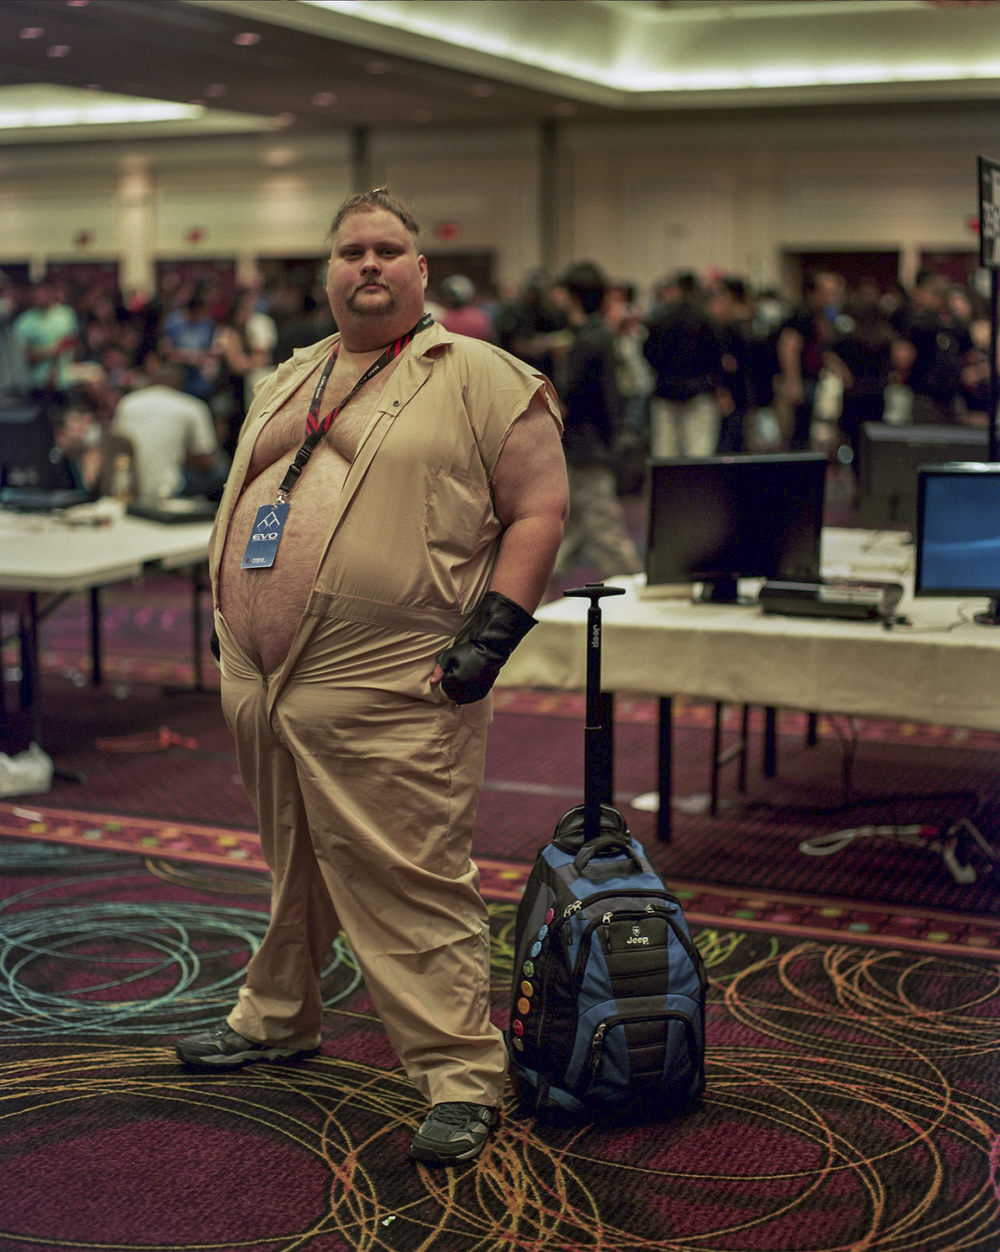 A spectator dresses up as his favorite character, Rufus, from Street Fighter, to watch the festivities of the EVO gaming tournament unfold at the Paris Hotel, in Las Vegas, Nevada